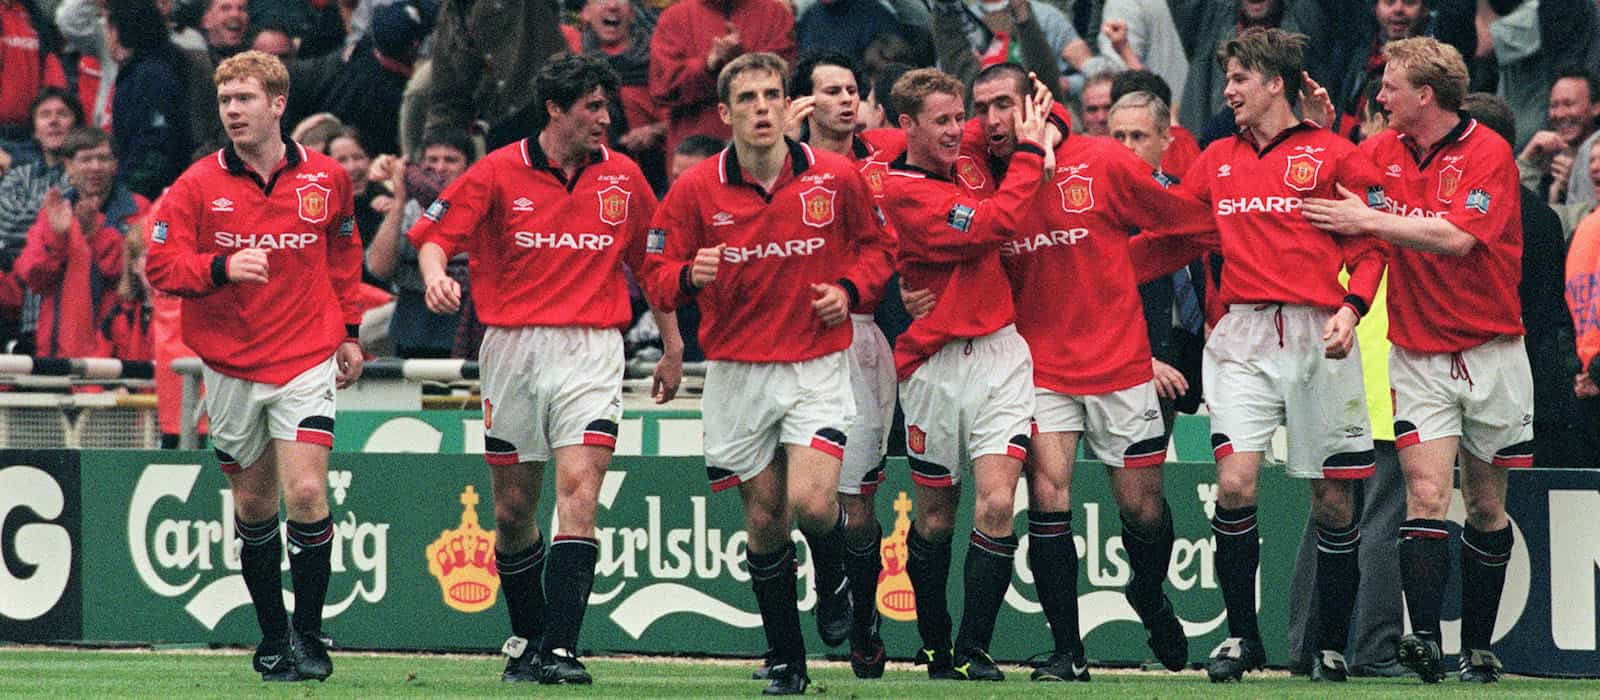 FA Cup Final Series 1995/96: Manchester United 1-0 Liverpool